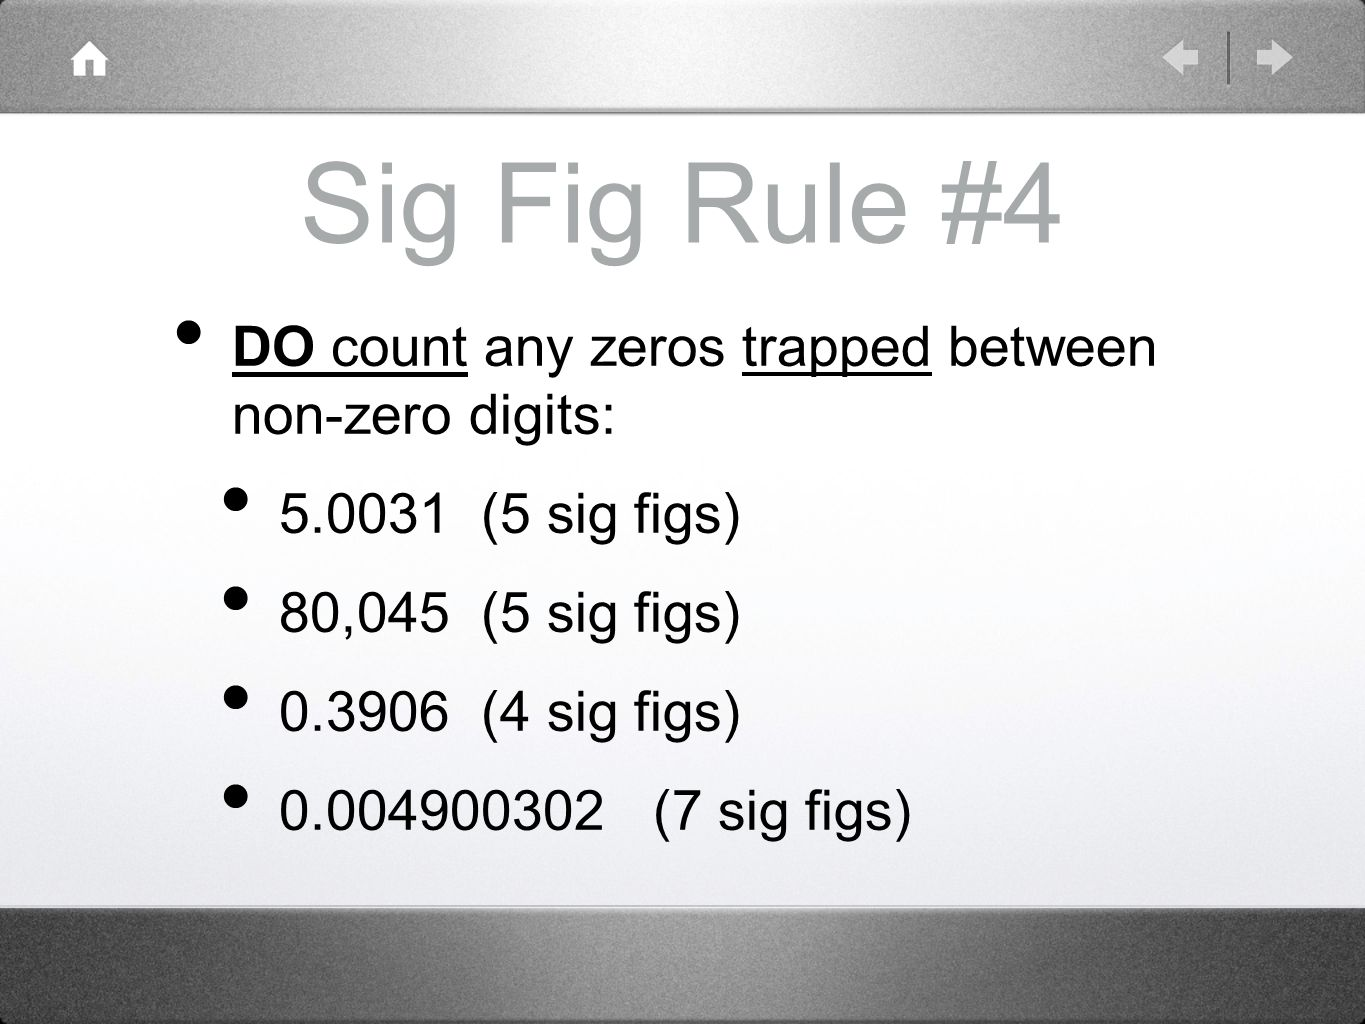 Sig Fig Rule #4 DO count any zeros trapped between non-zero digits: (5 sig figs) 80,045 (5 sig figs) (4 sig figs) (7 sig figs)